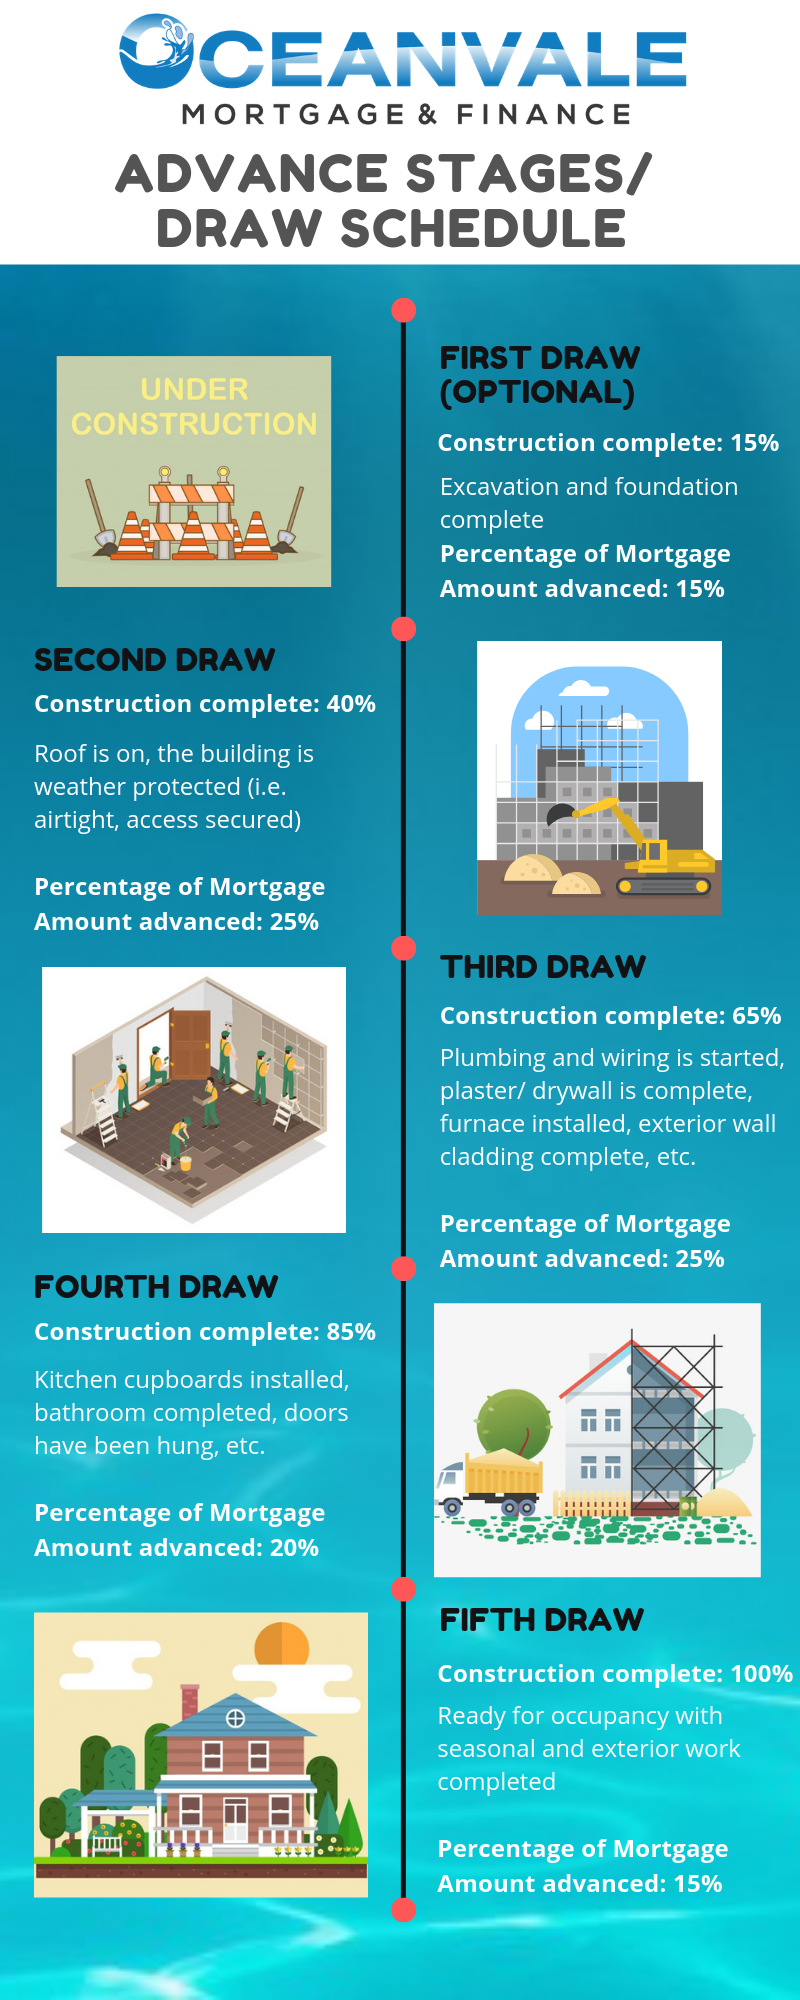 Construction Mortgage Draw schedule